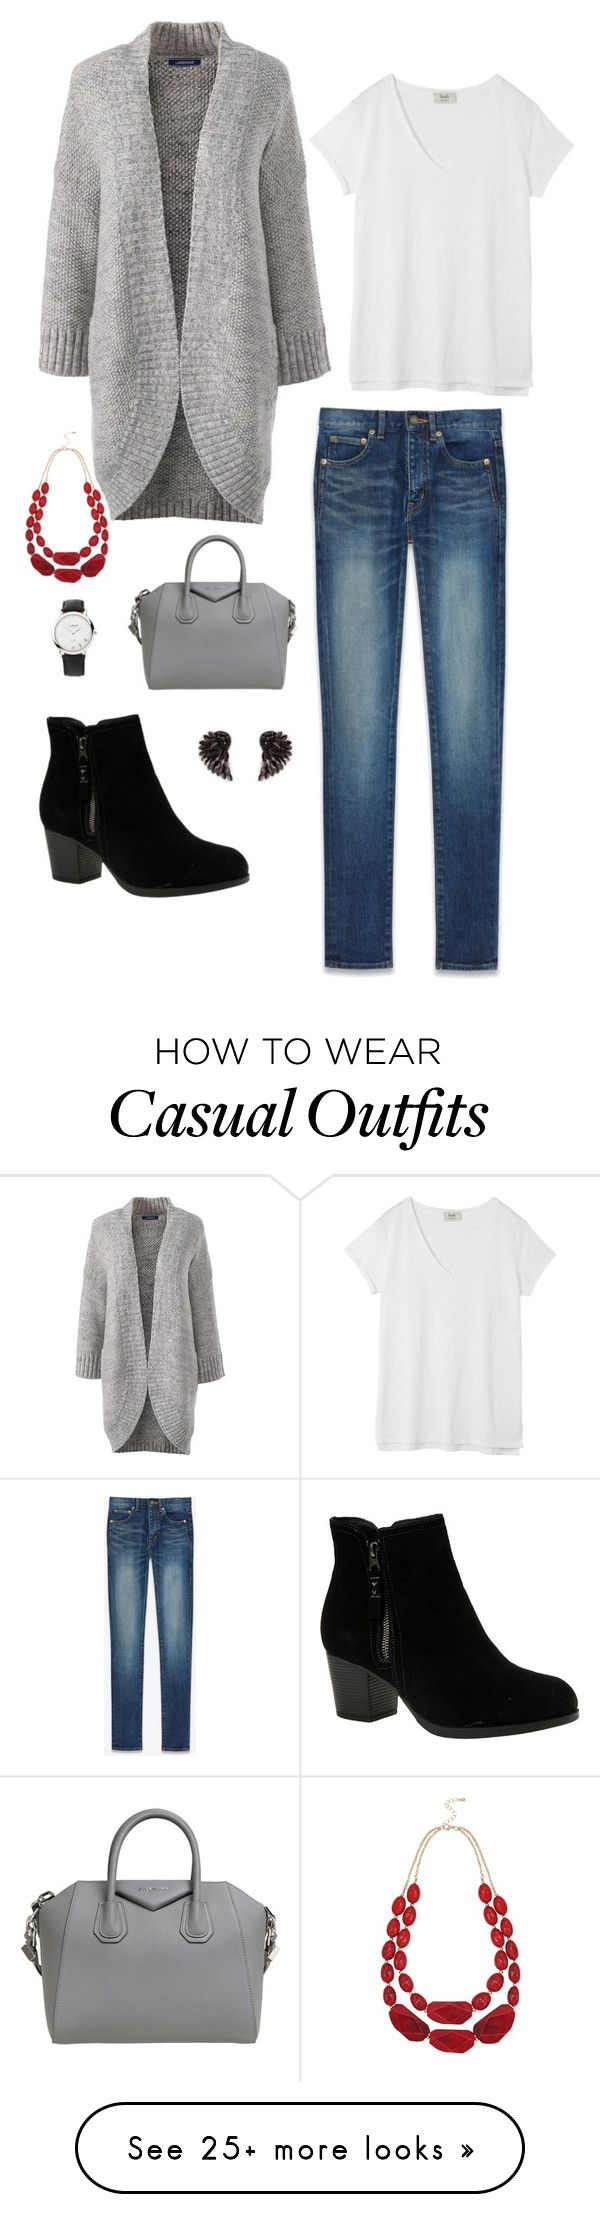 """Casual"" by paulina-xxiv on Polyvore featuring Lands' End, Yves Saint Laurent, Skechers, Hush, Givenchy, Henri Bendel, Links of London and M&Co"